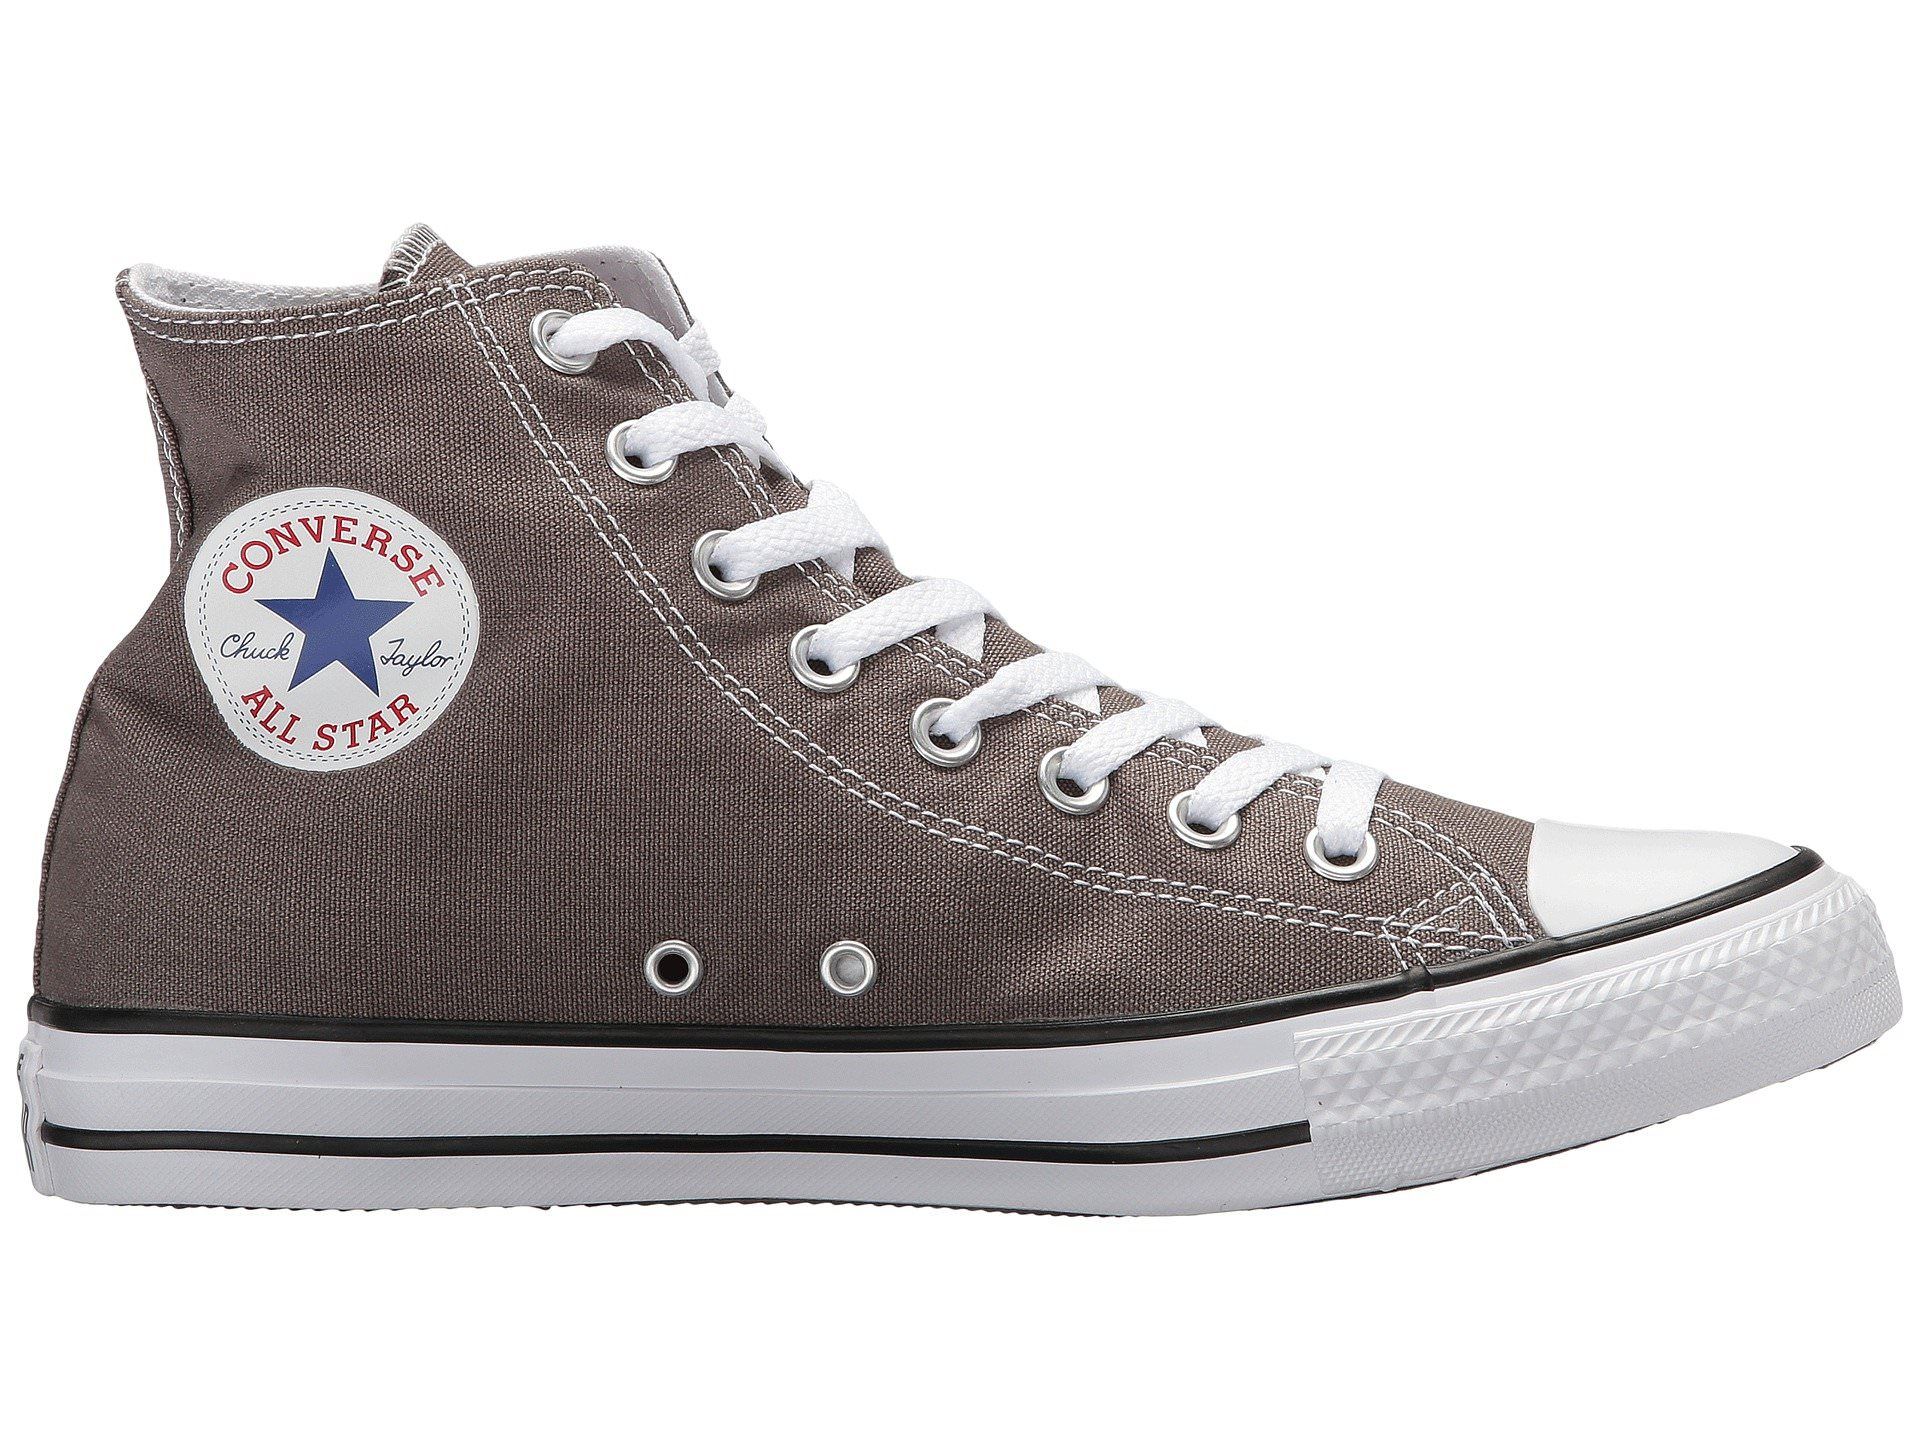 f764dabc0051 Converse CHUCK TAYLOR ALL STAR Unisex Charcoal Gray Canvas High Top Sneaker  Shoes